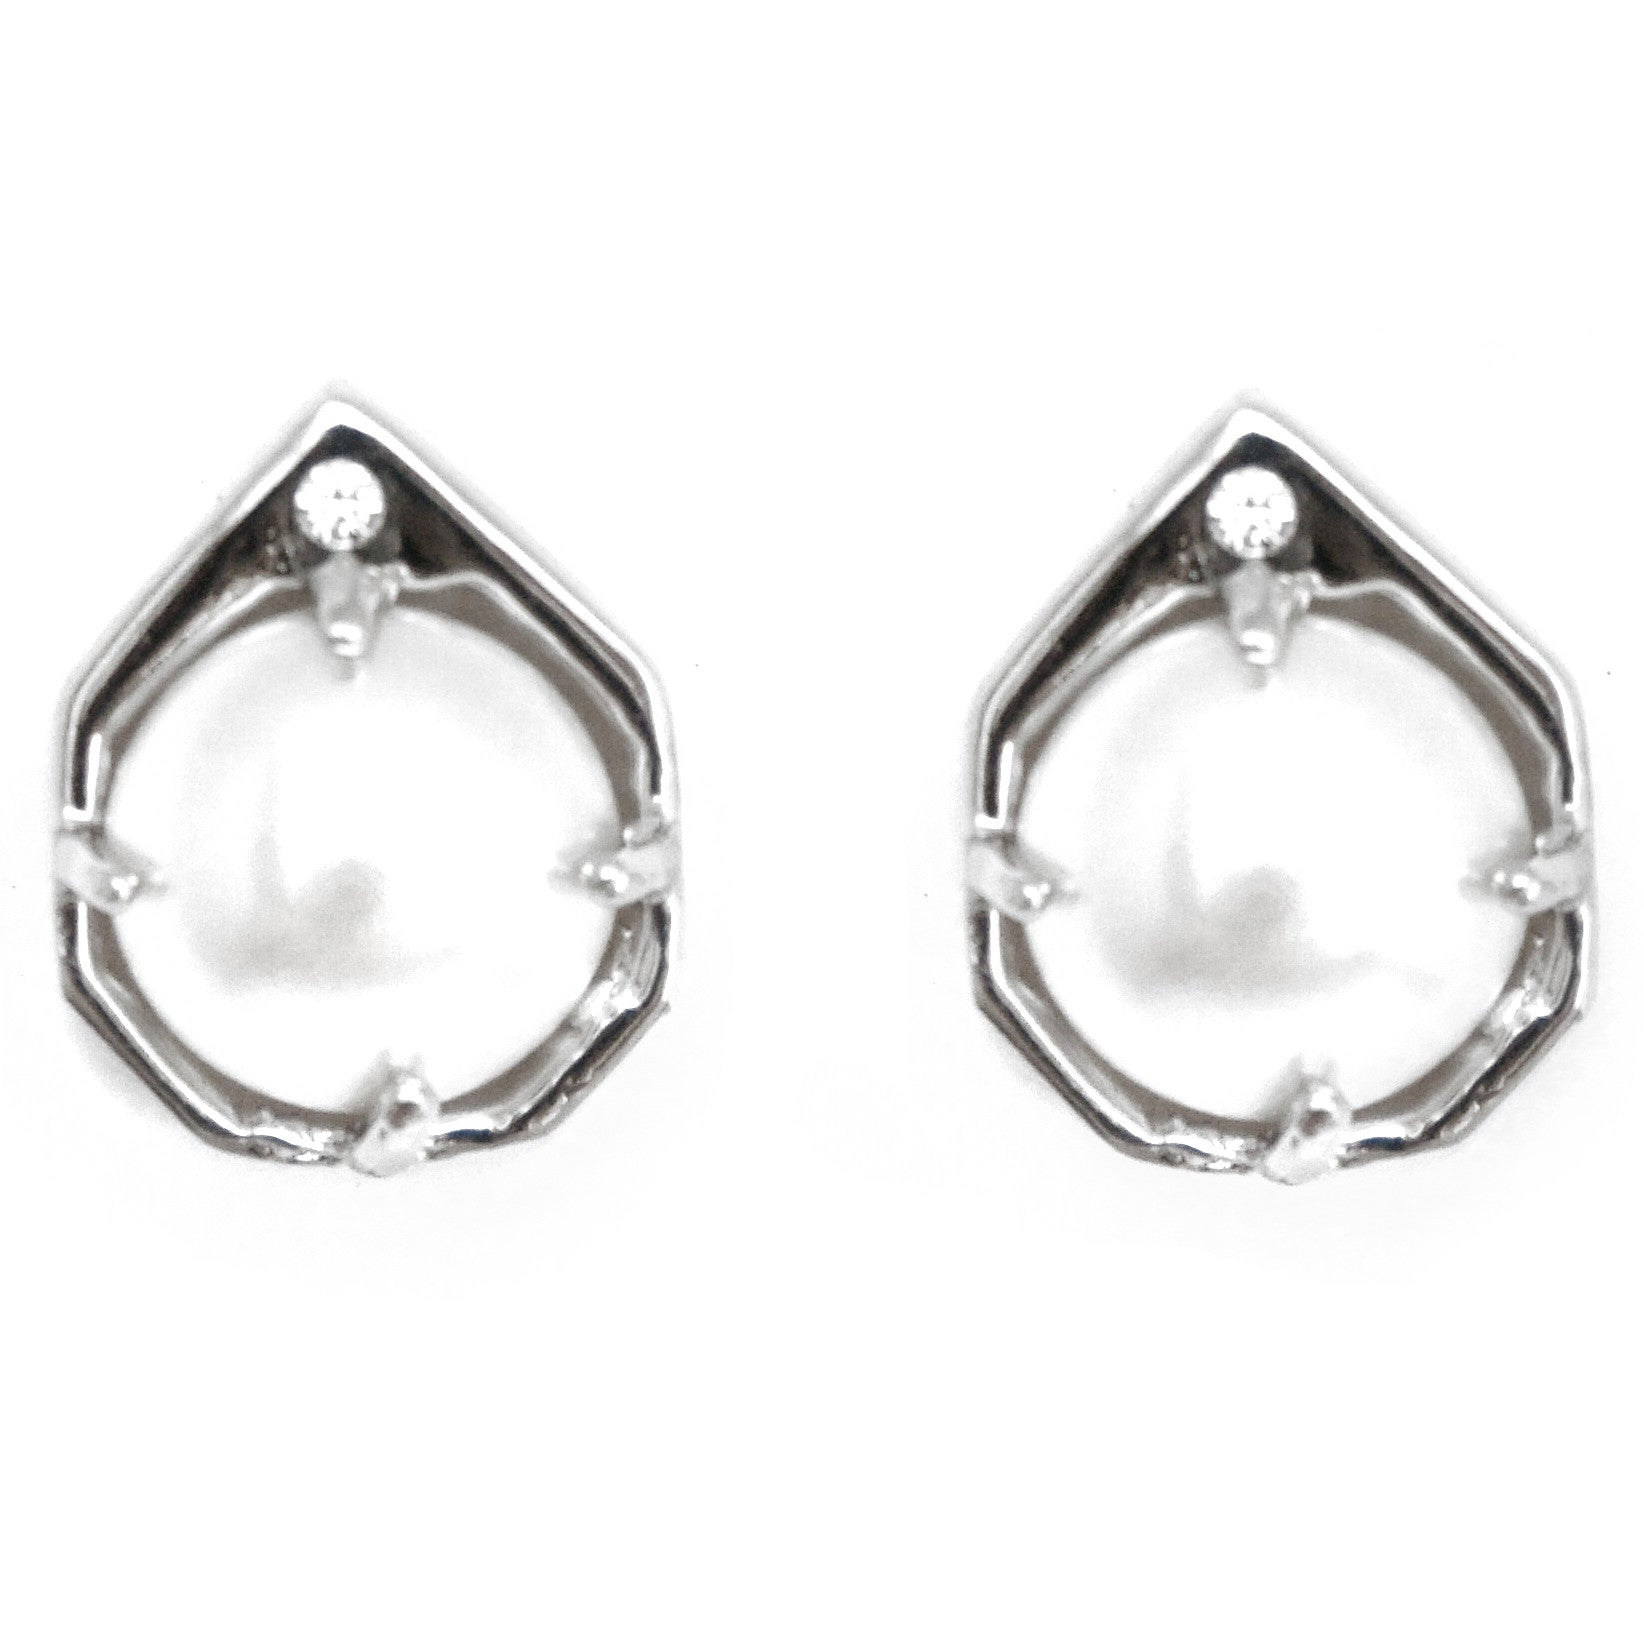 CAROLYN COLBY - SILVER ECLIPSE STUD PEARL EARRINGS